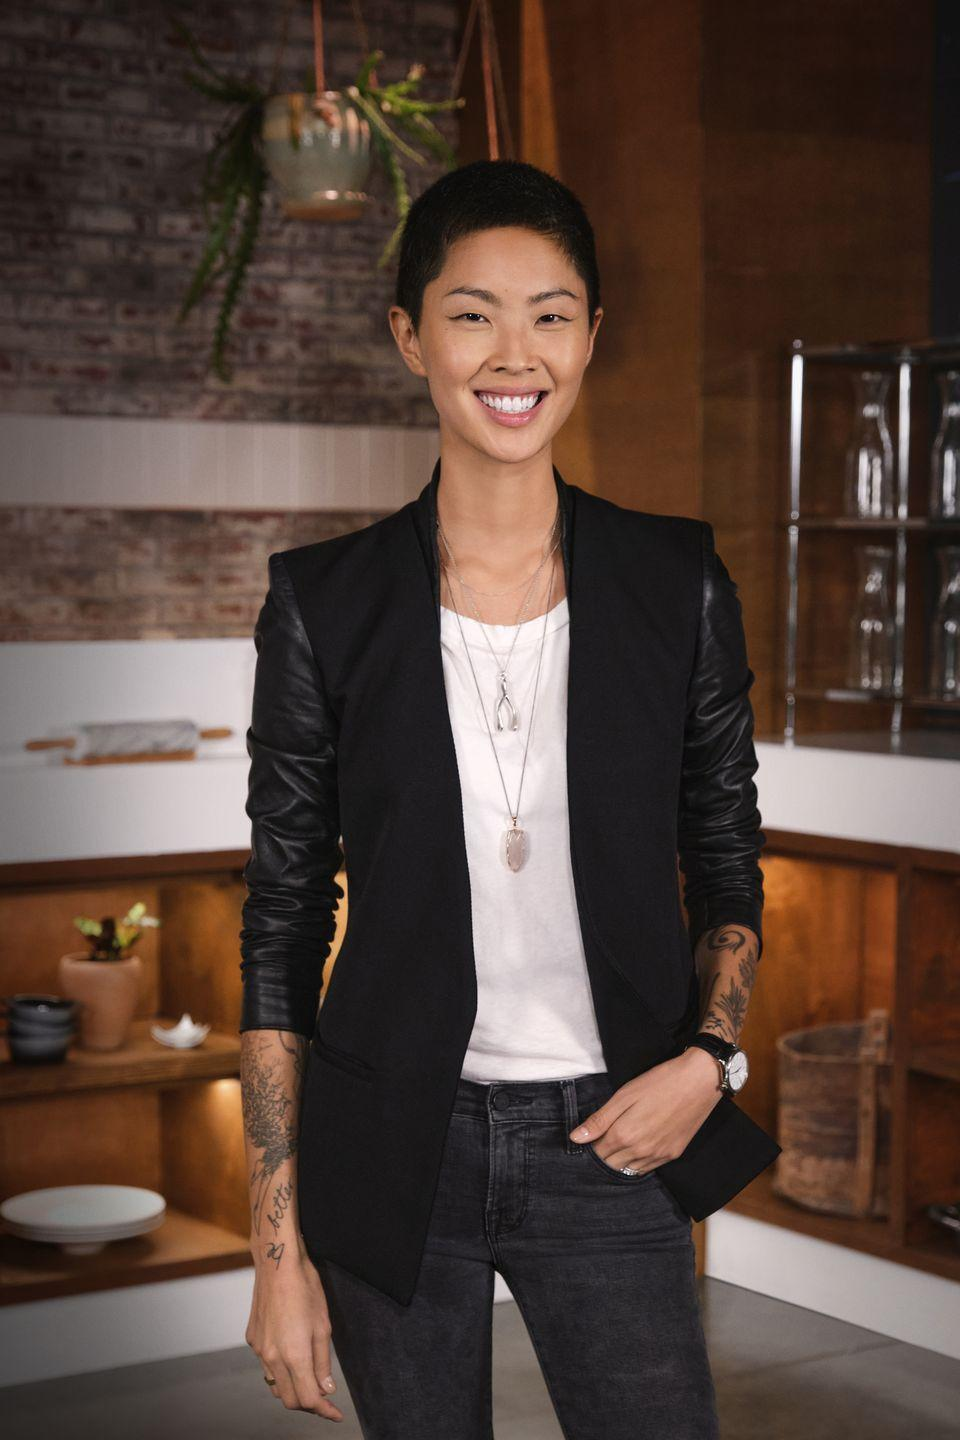 """<p>After winning the show, Kristen continued to build a prestigious reputation within the industry, while also working as a host on <em>36 Hours</em> and publishing her cookbook <em><a href=""""https://www.amazon.com/Kristen-Kish-Cooking-Recipes-Techniques/dp/0553459767?&tag=delish_auto-append-20&ascsubtag=[artid